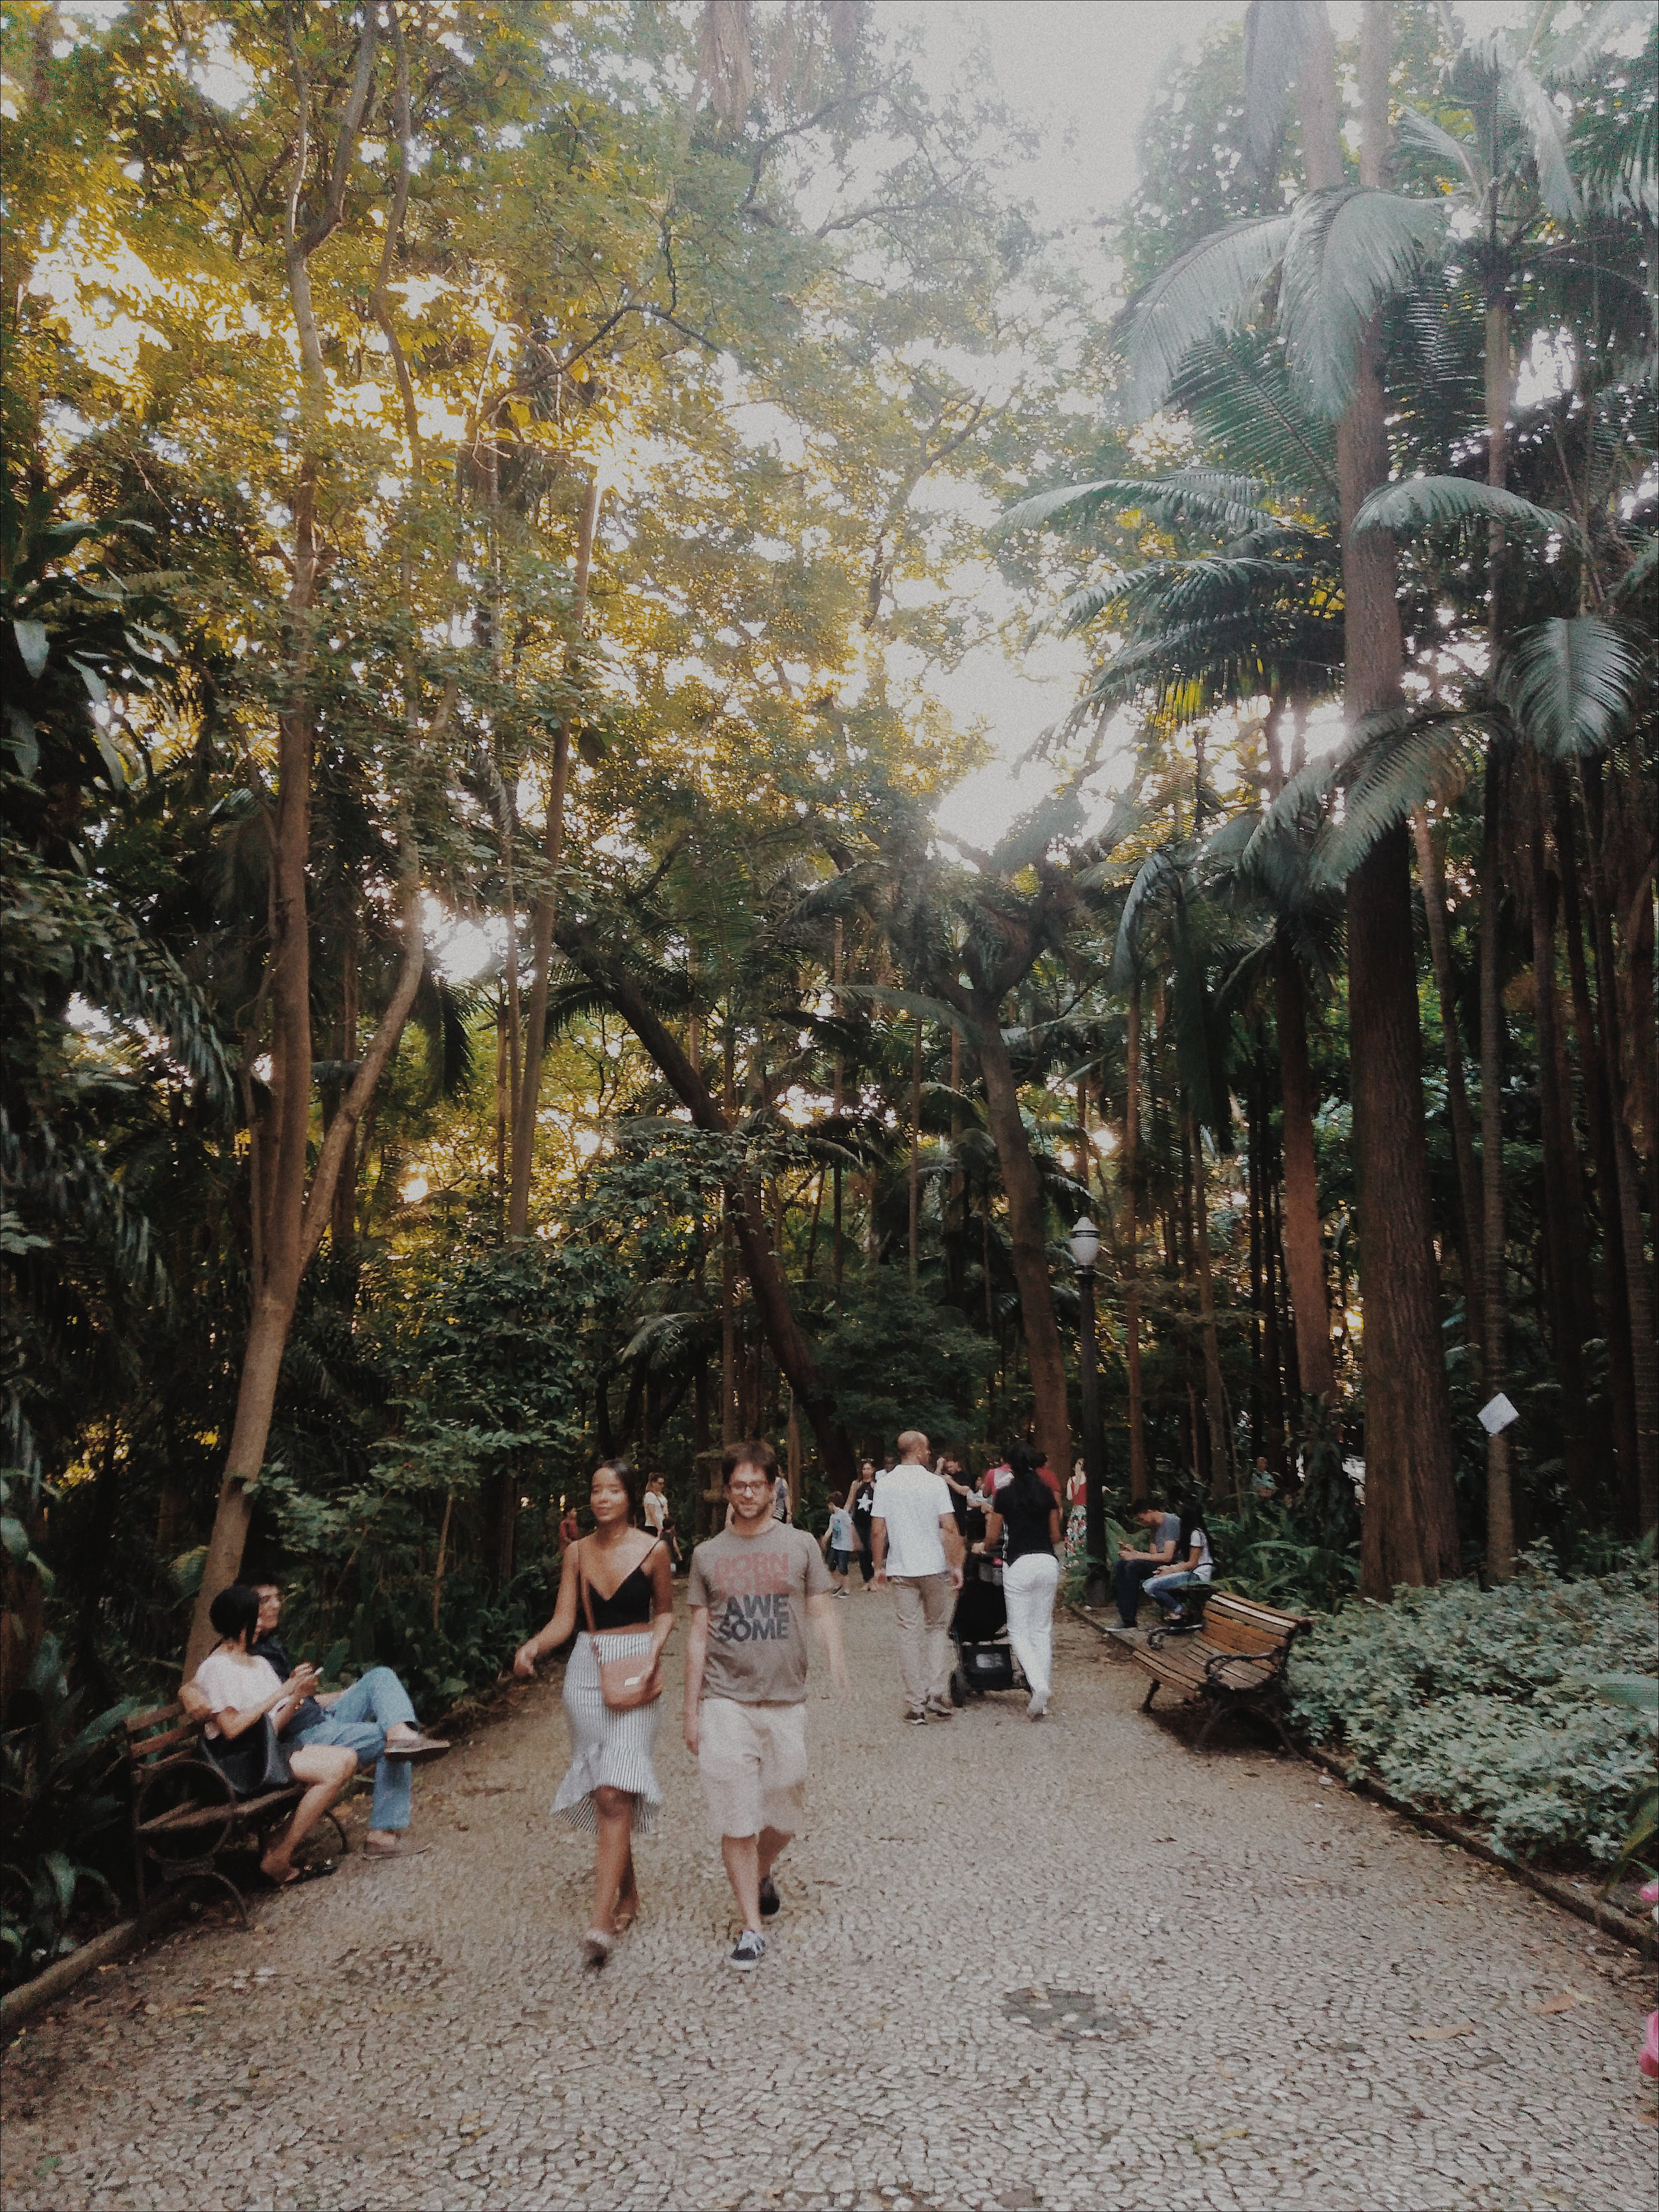 People Walking in a Park With Large Trees